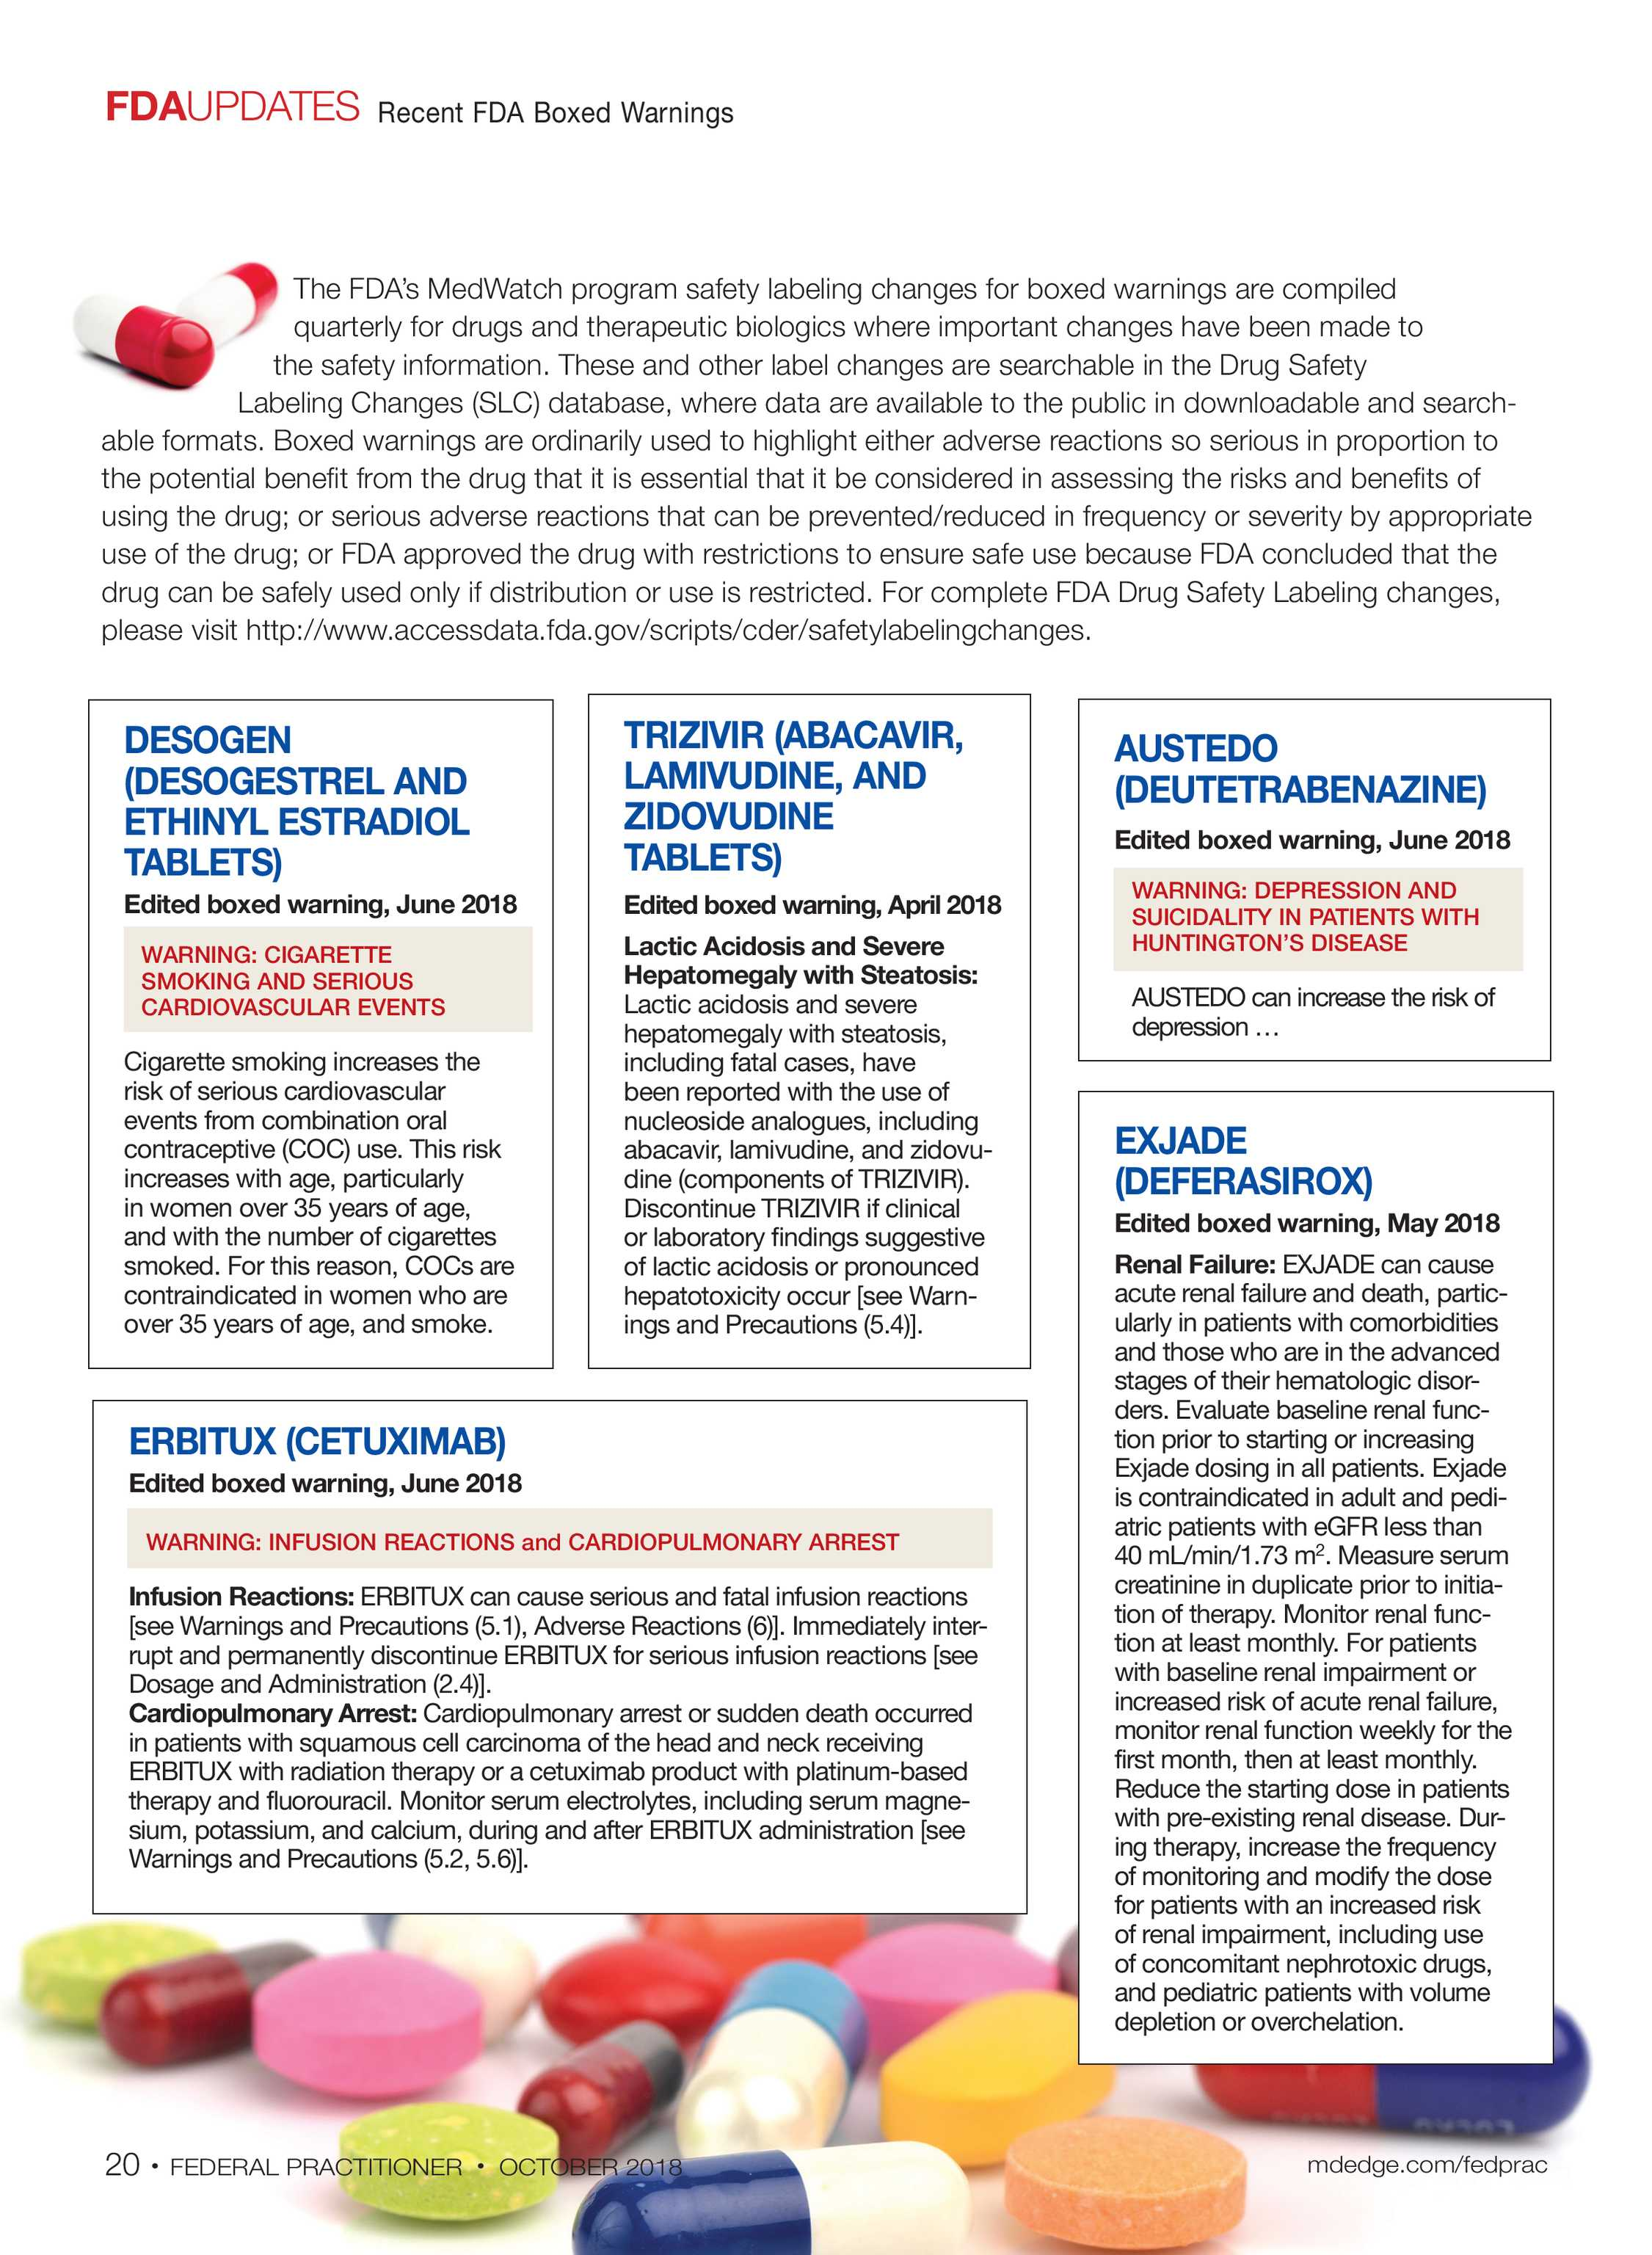 Federal Practitioner - October2018 - page 20